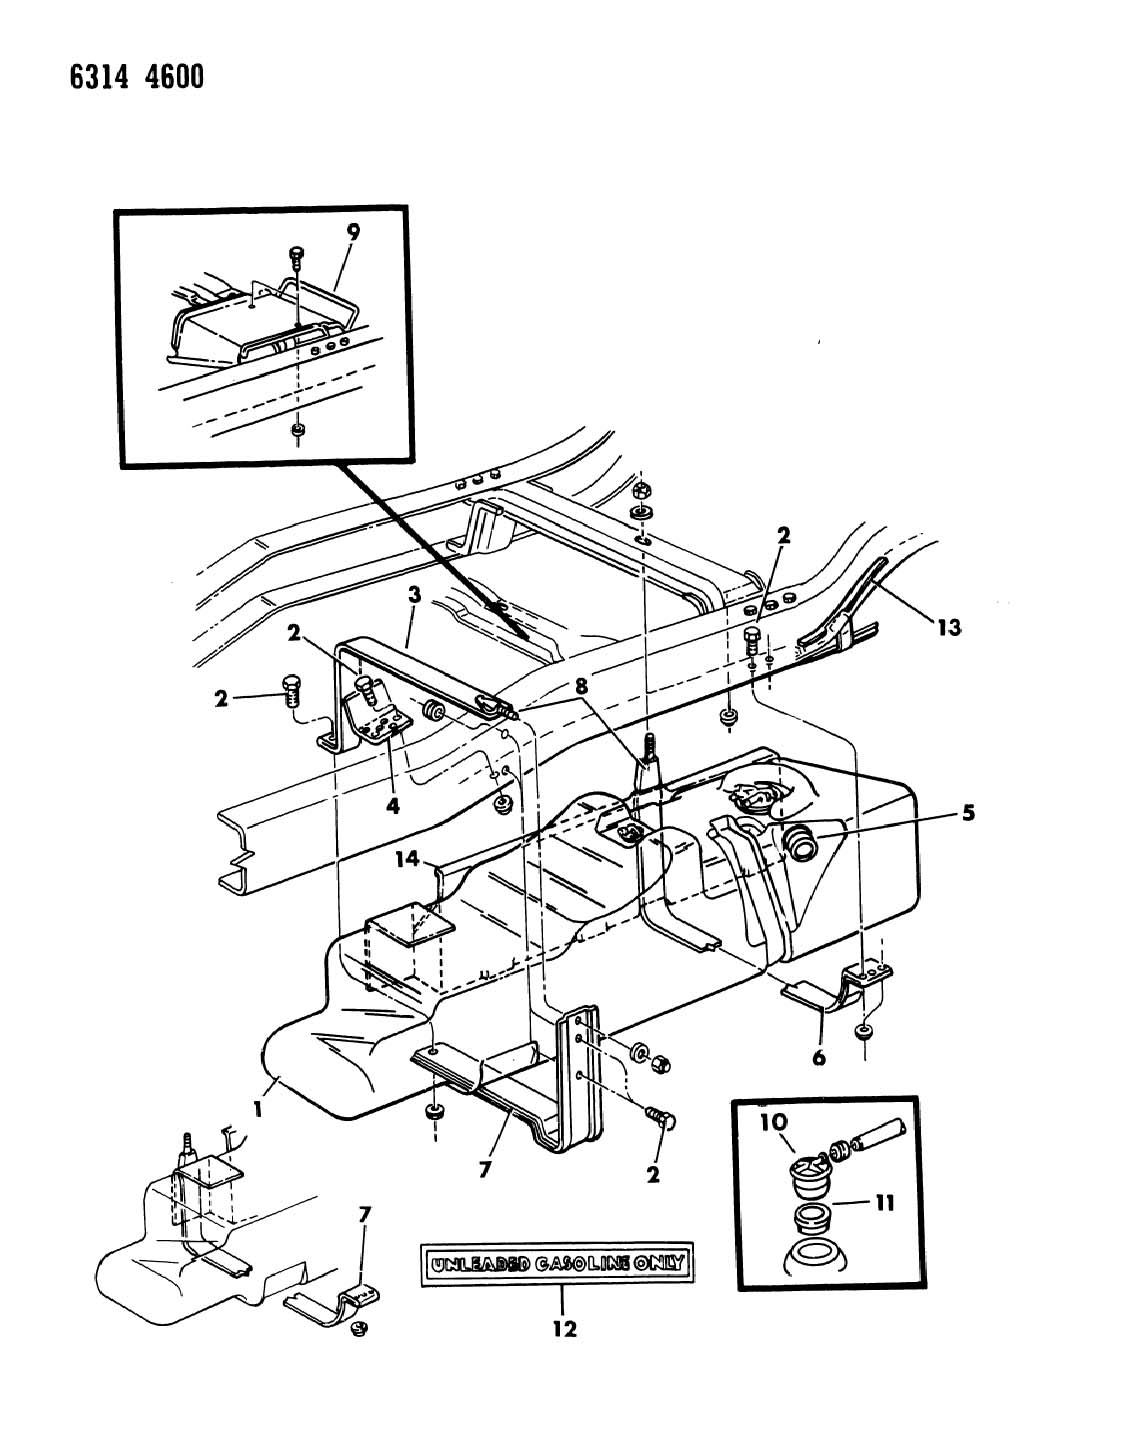 Isuzu Npr Body Parts Diagram. Isuzu. Auto Wiring Diagram